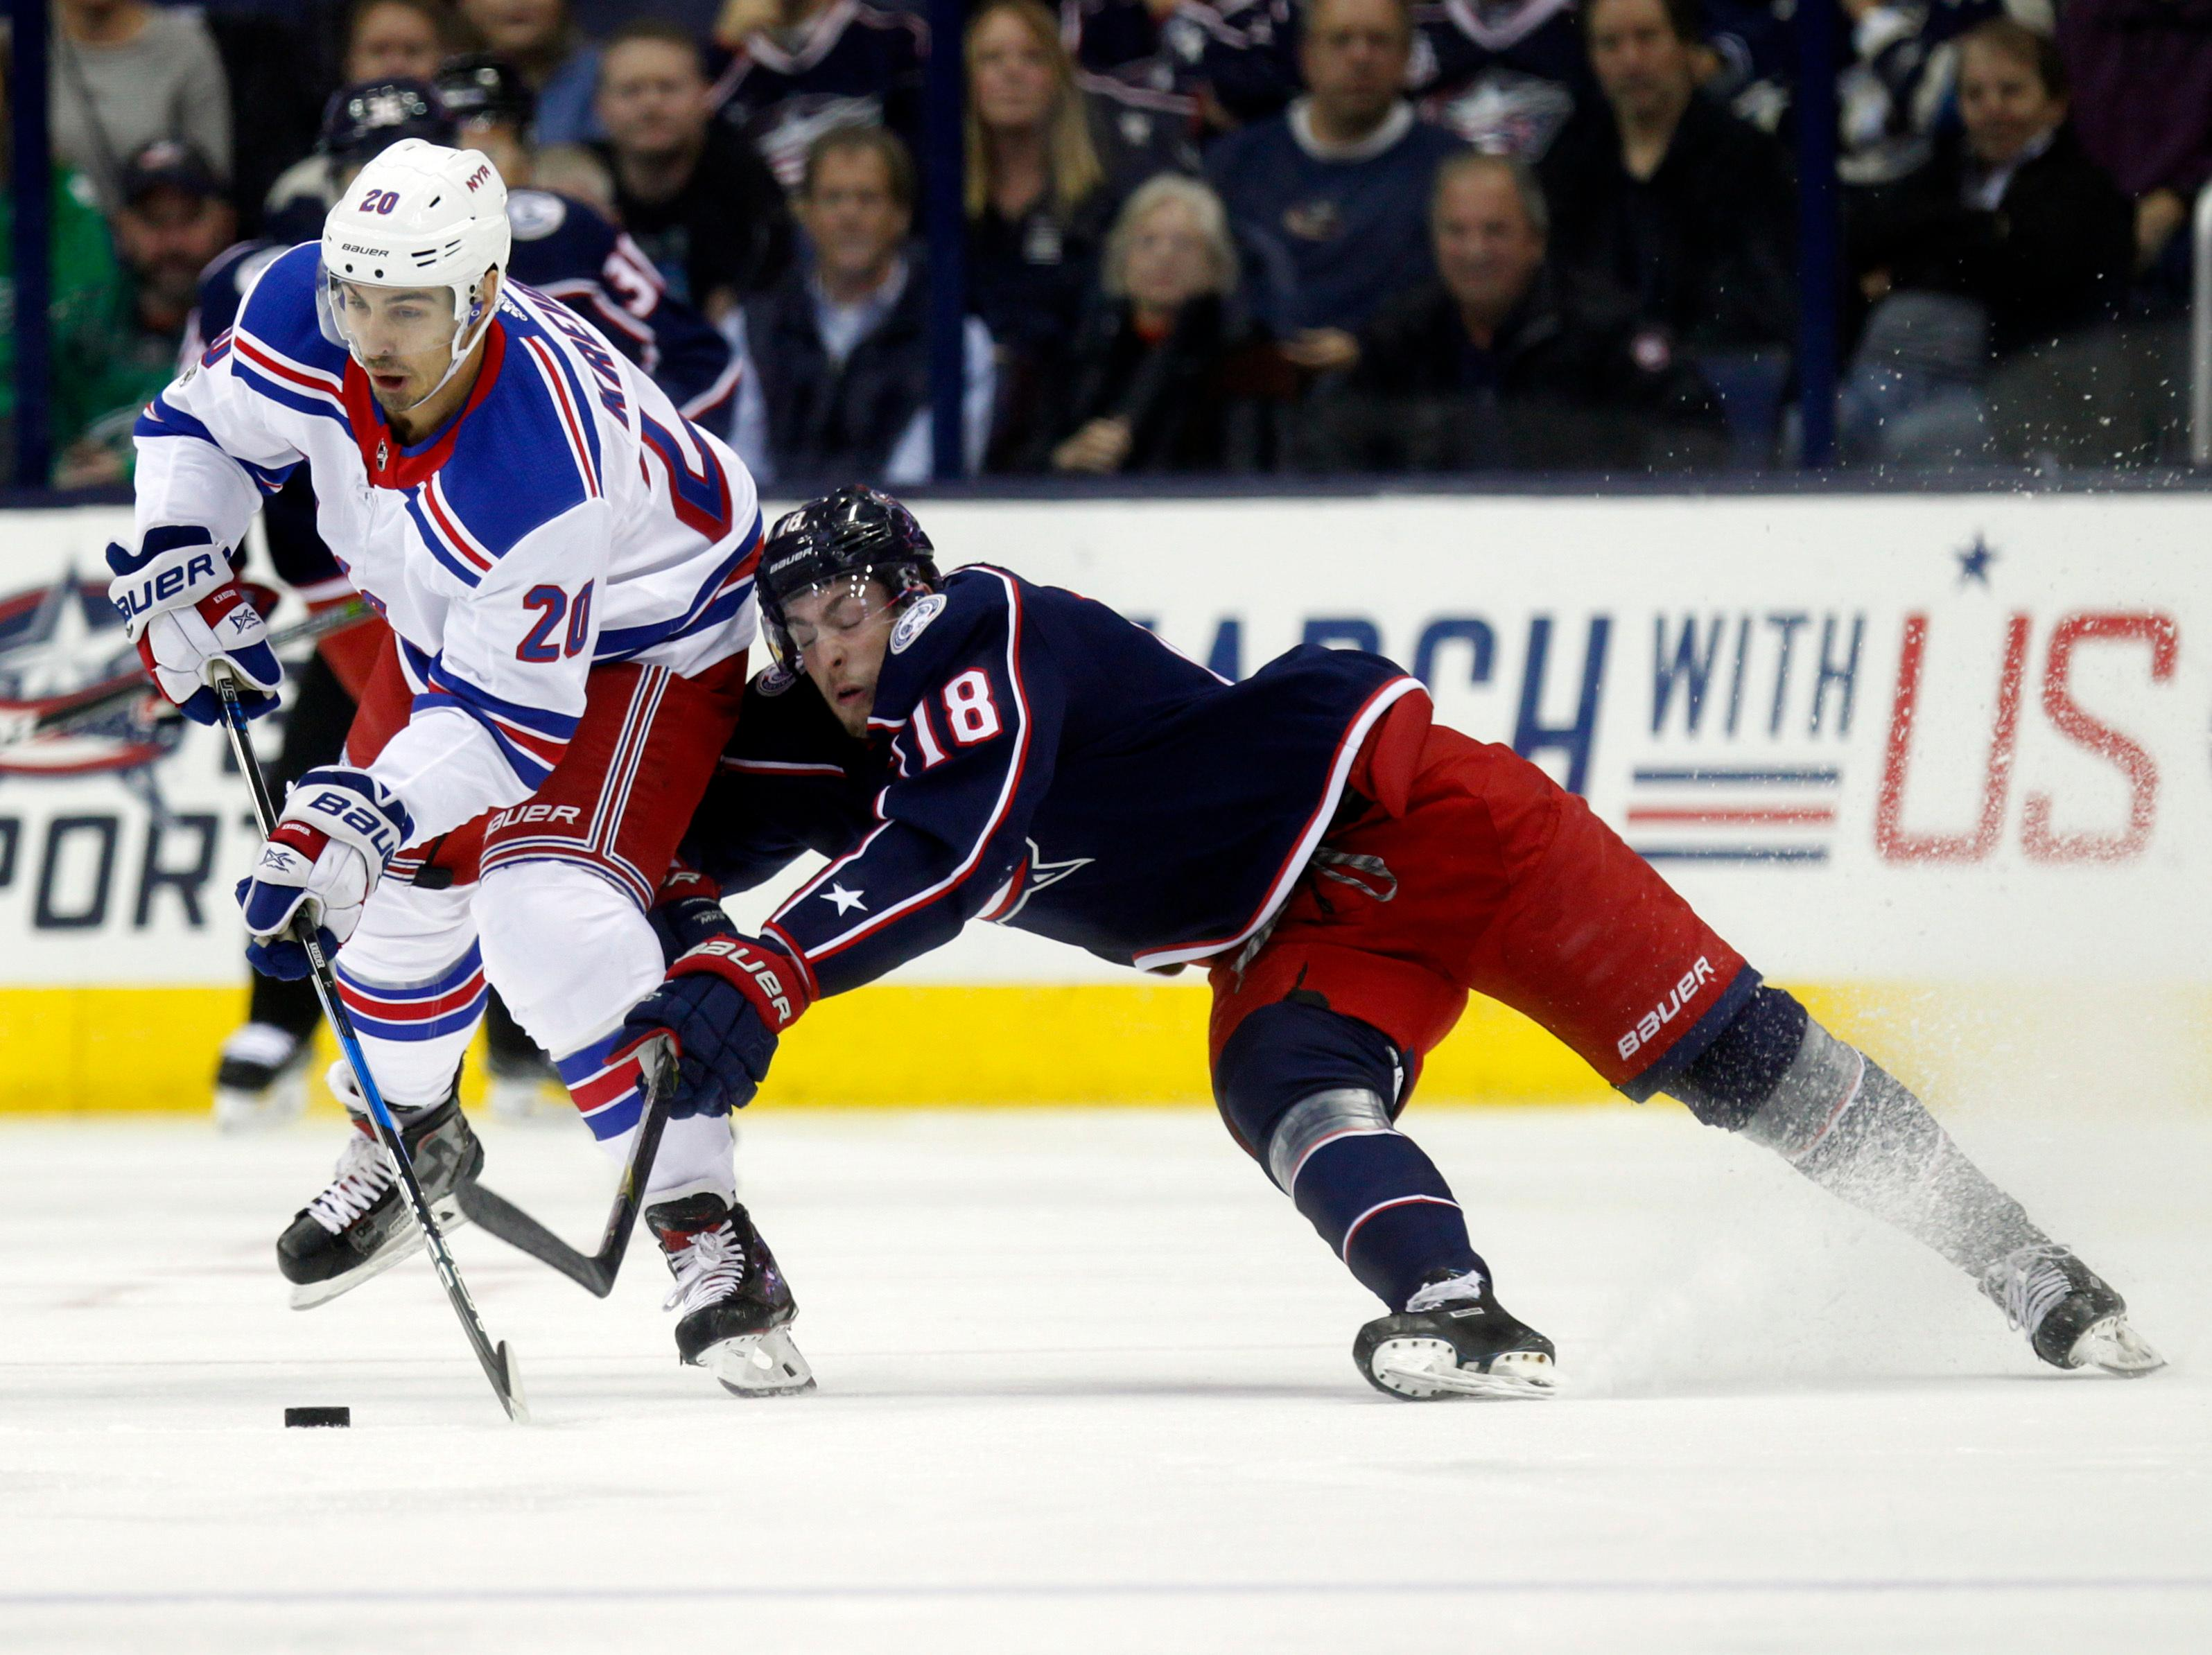 New York Rangers forward Chris Kreider, left, controls the puck against Columbus Blue Jackets forward Pierre-Luc Dubois during the first period of an NHL hockey game in Columbus, Ohio, Friday, Oct. 13, 2017. (AP Photo/Paul Vernon)